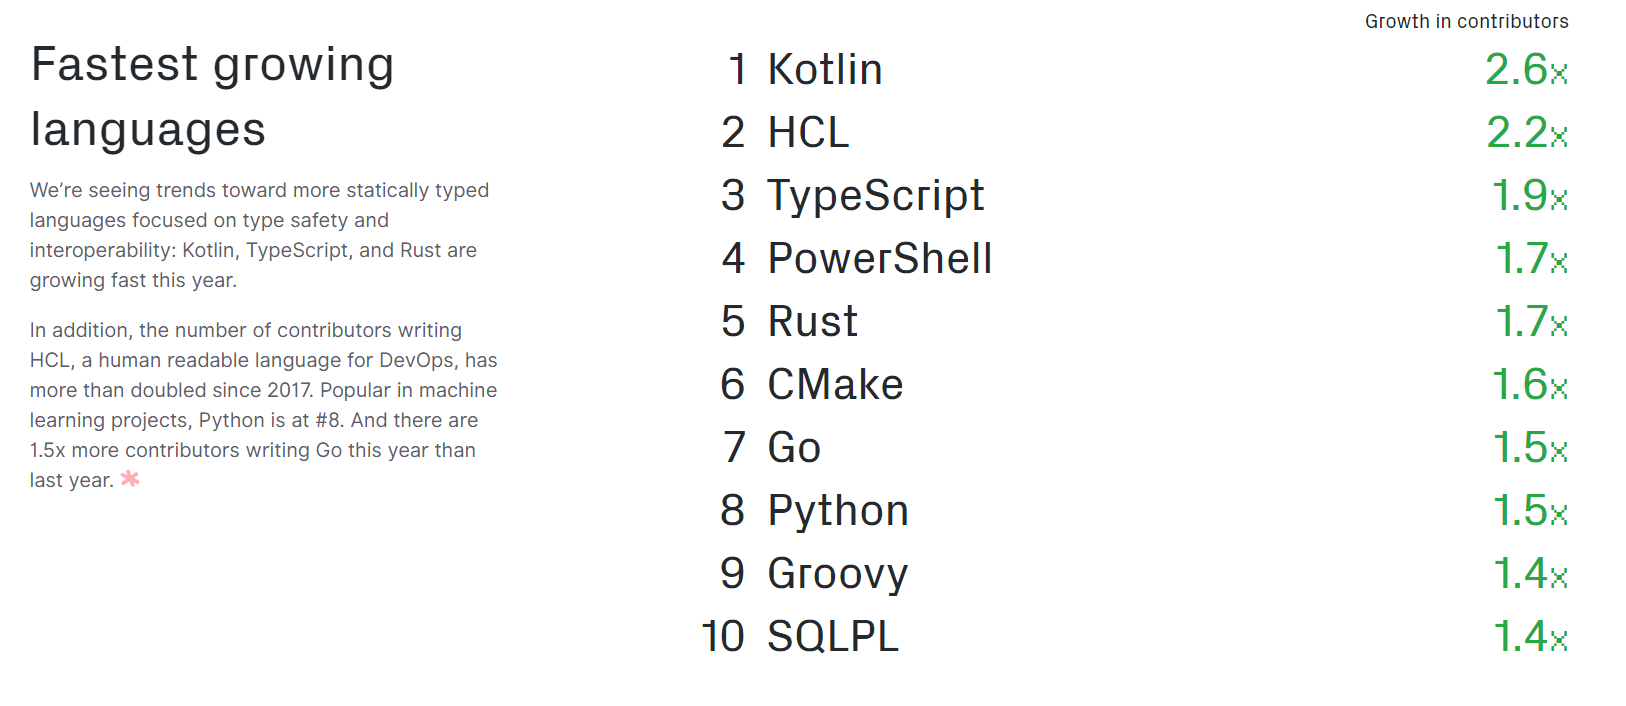 Most Popular Programming Languages Fastest